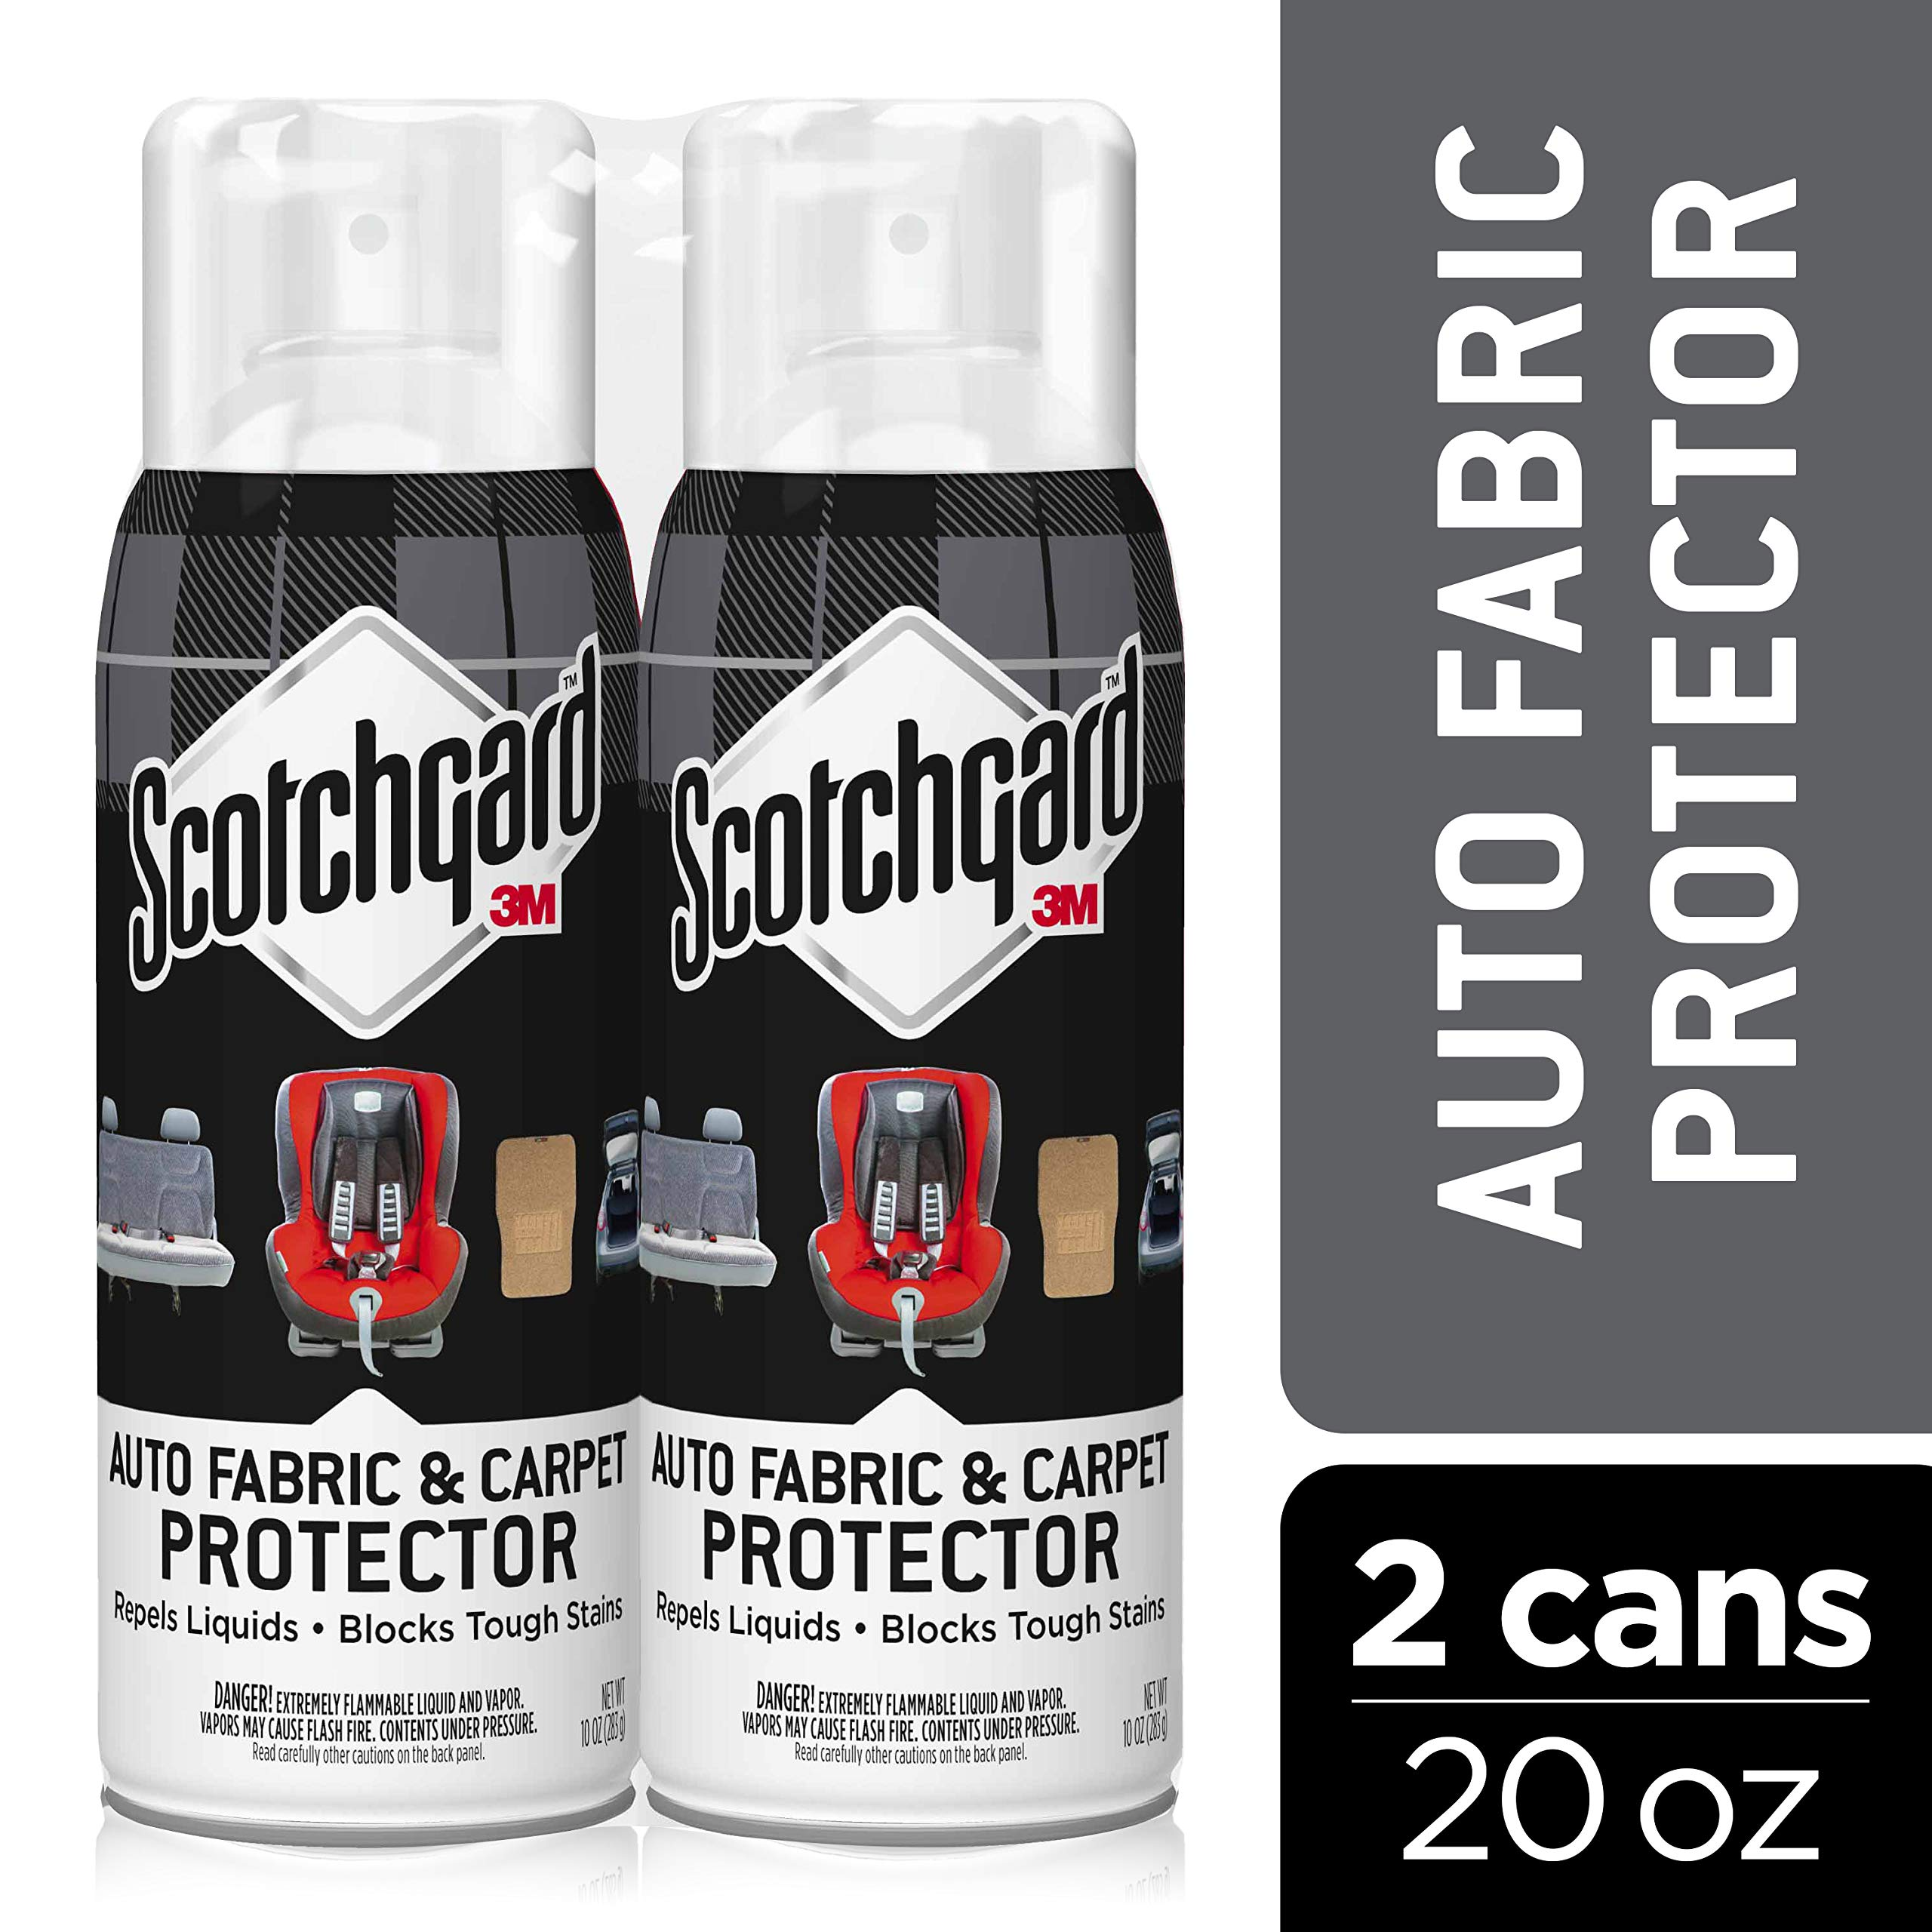 Scotchgard Auto Fabric & Carpet Protector 2 Cans, 20 Oz.